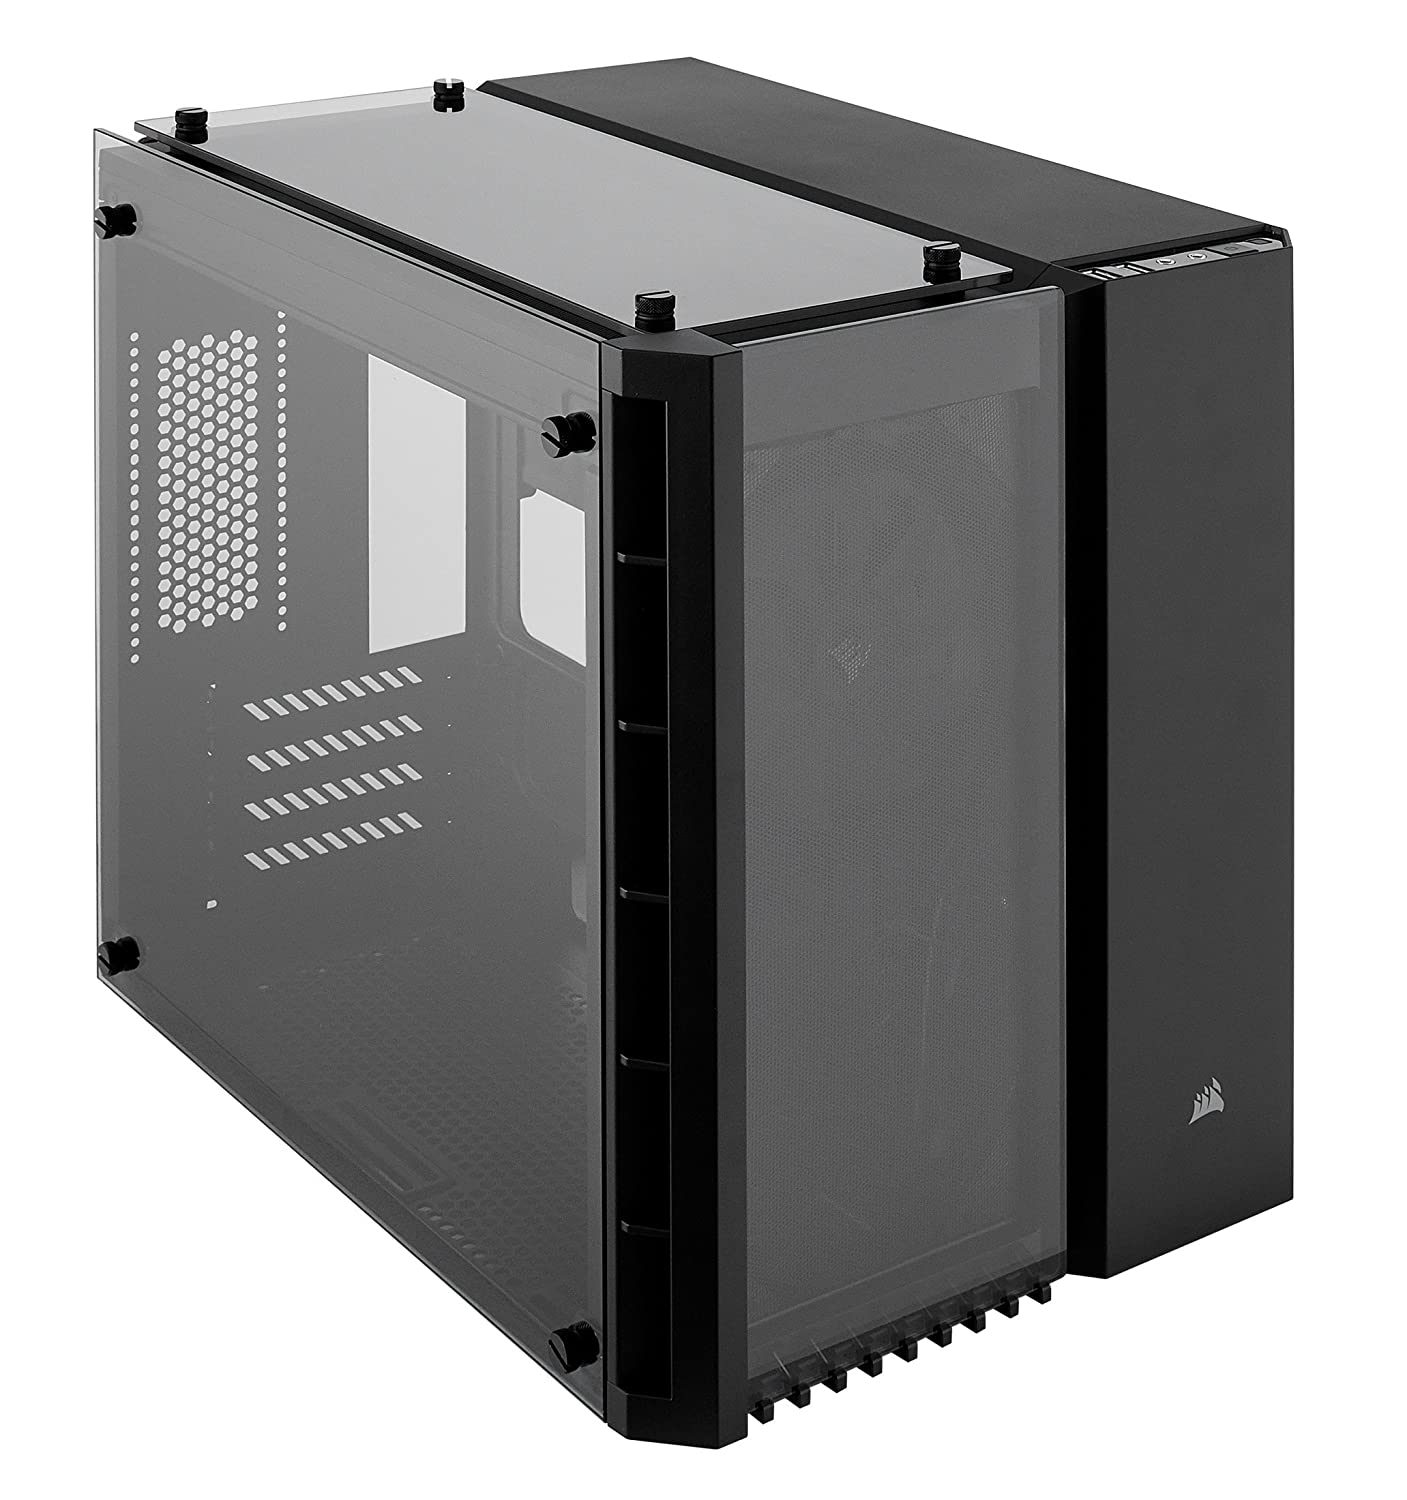 Corsair CC WW 280X Crystal Tempered Glass Micro ATX PC Case Black Amazon puters & Accessories